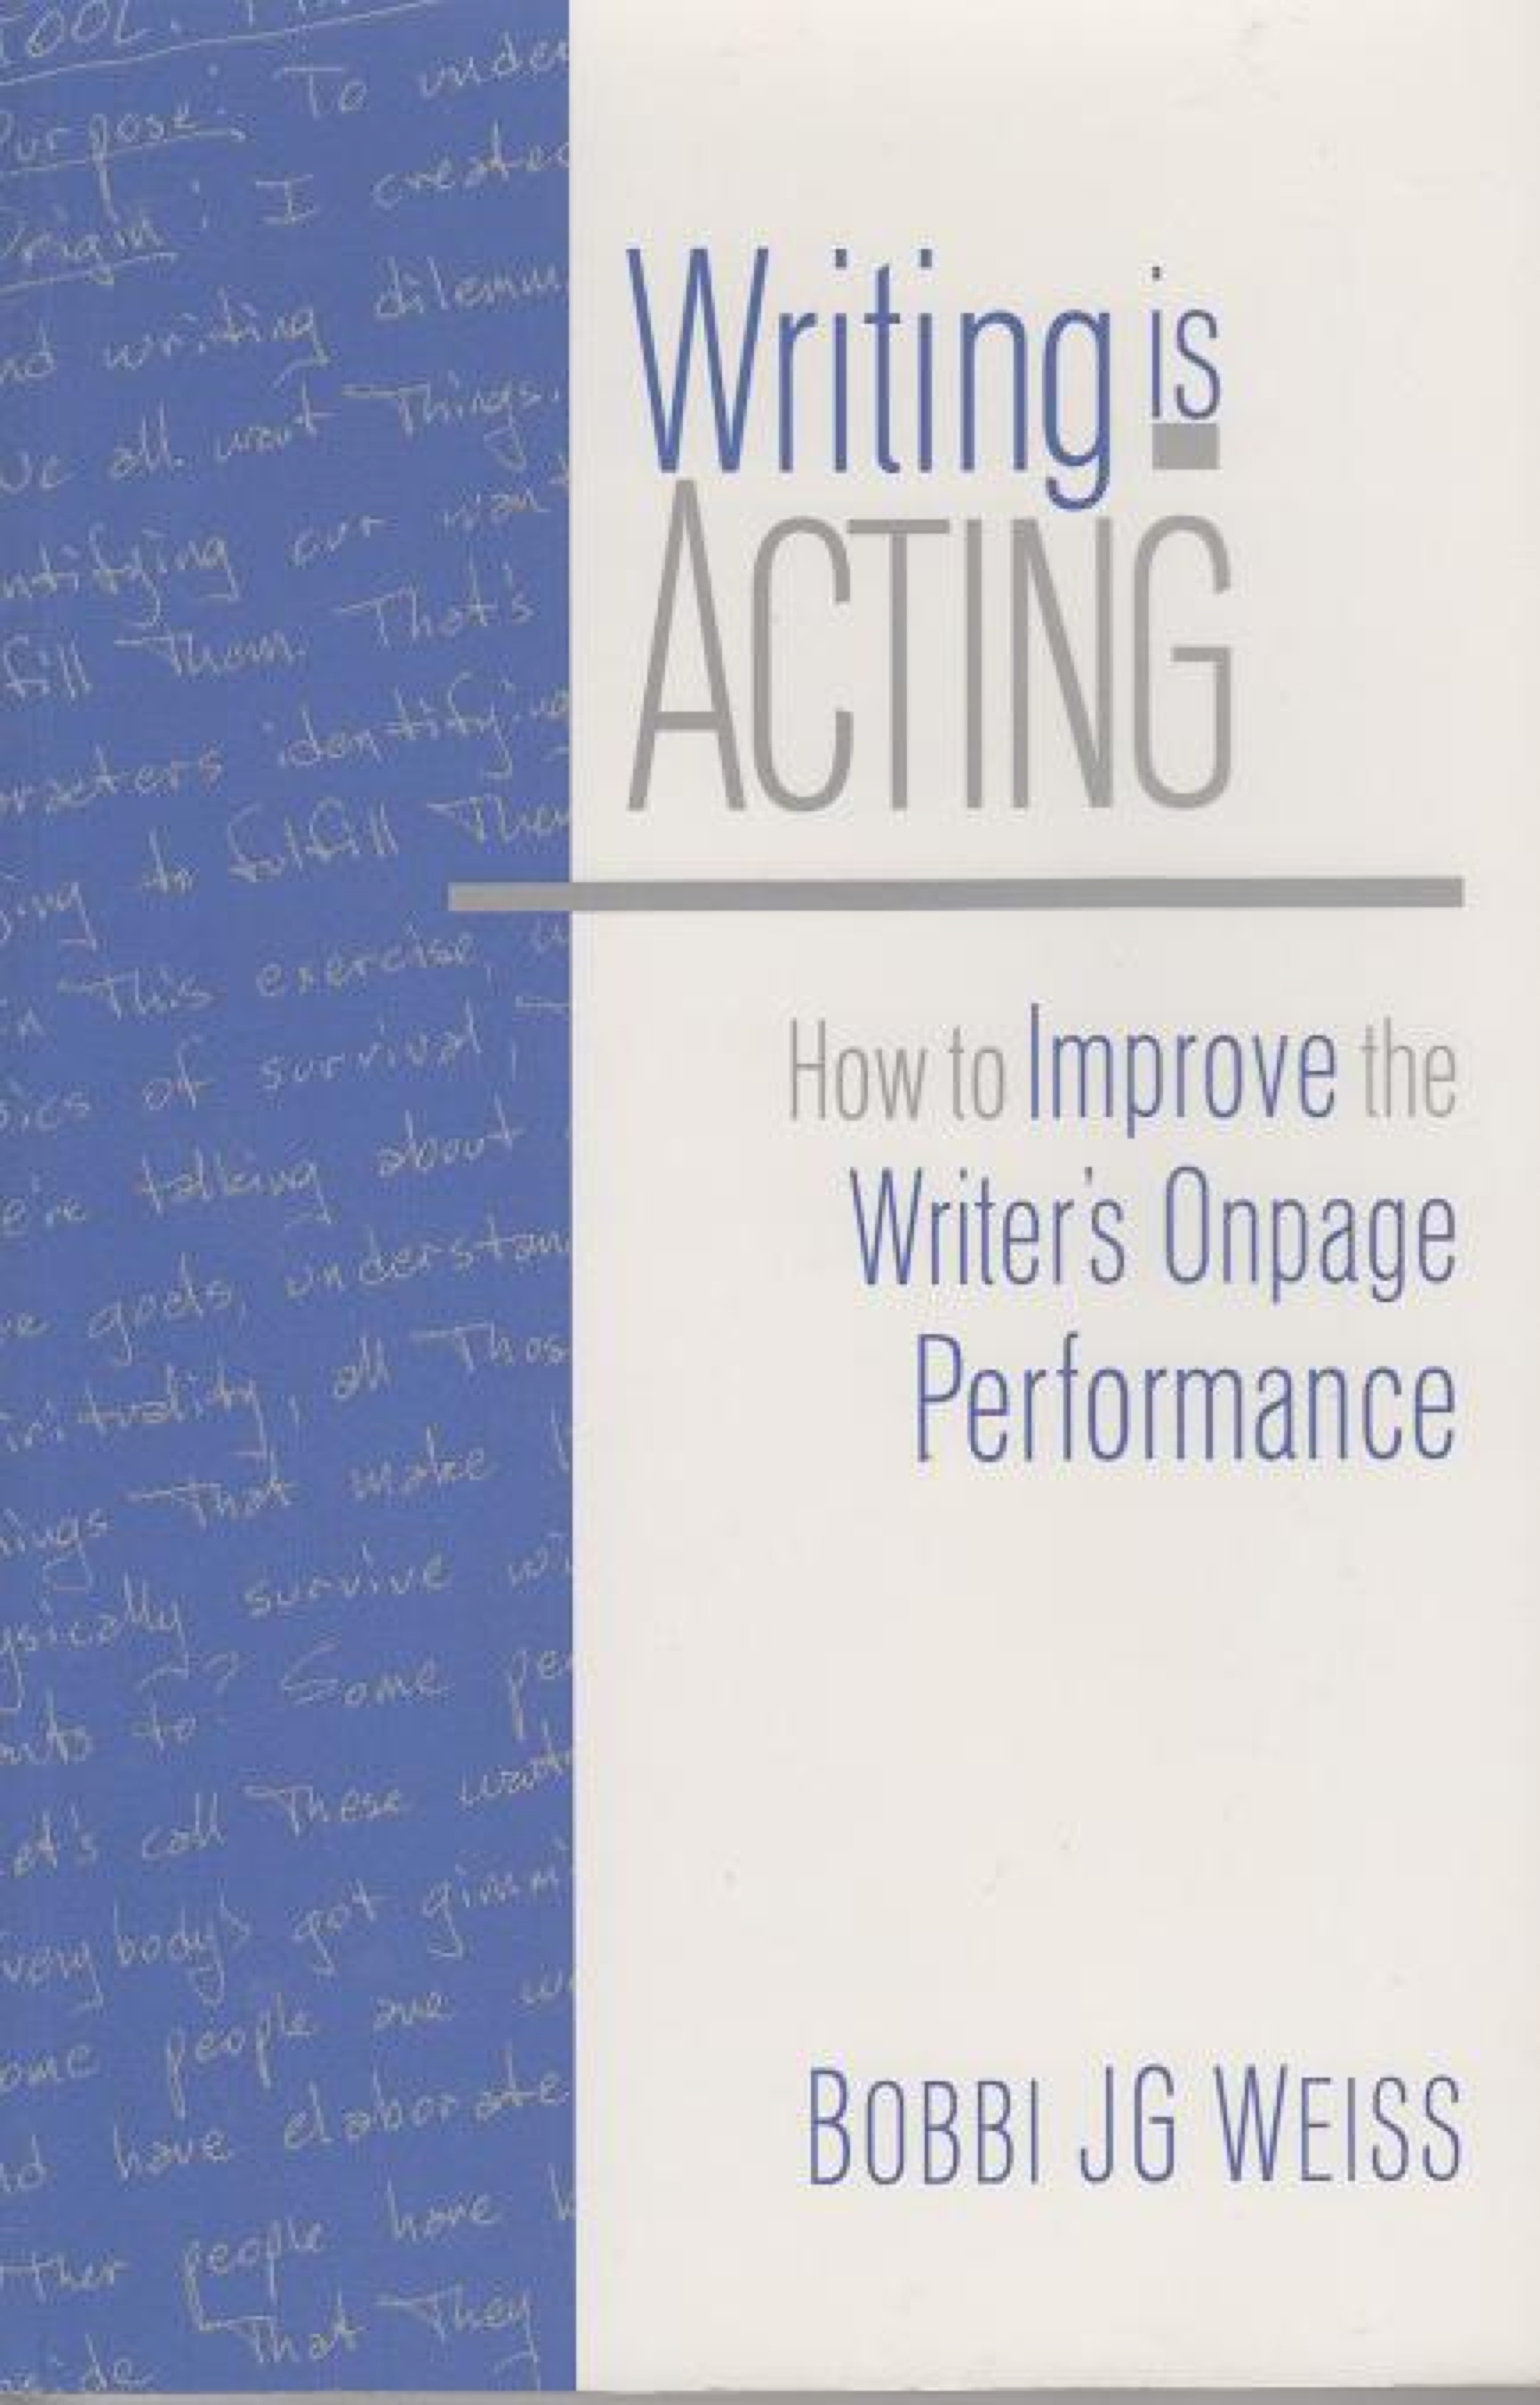 WRITING IS ACTING book cover